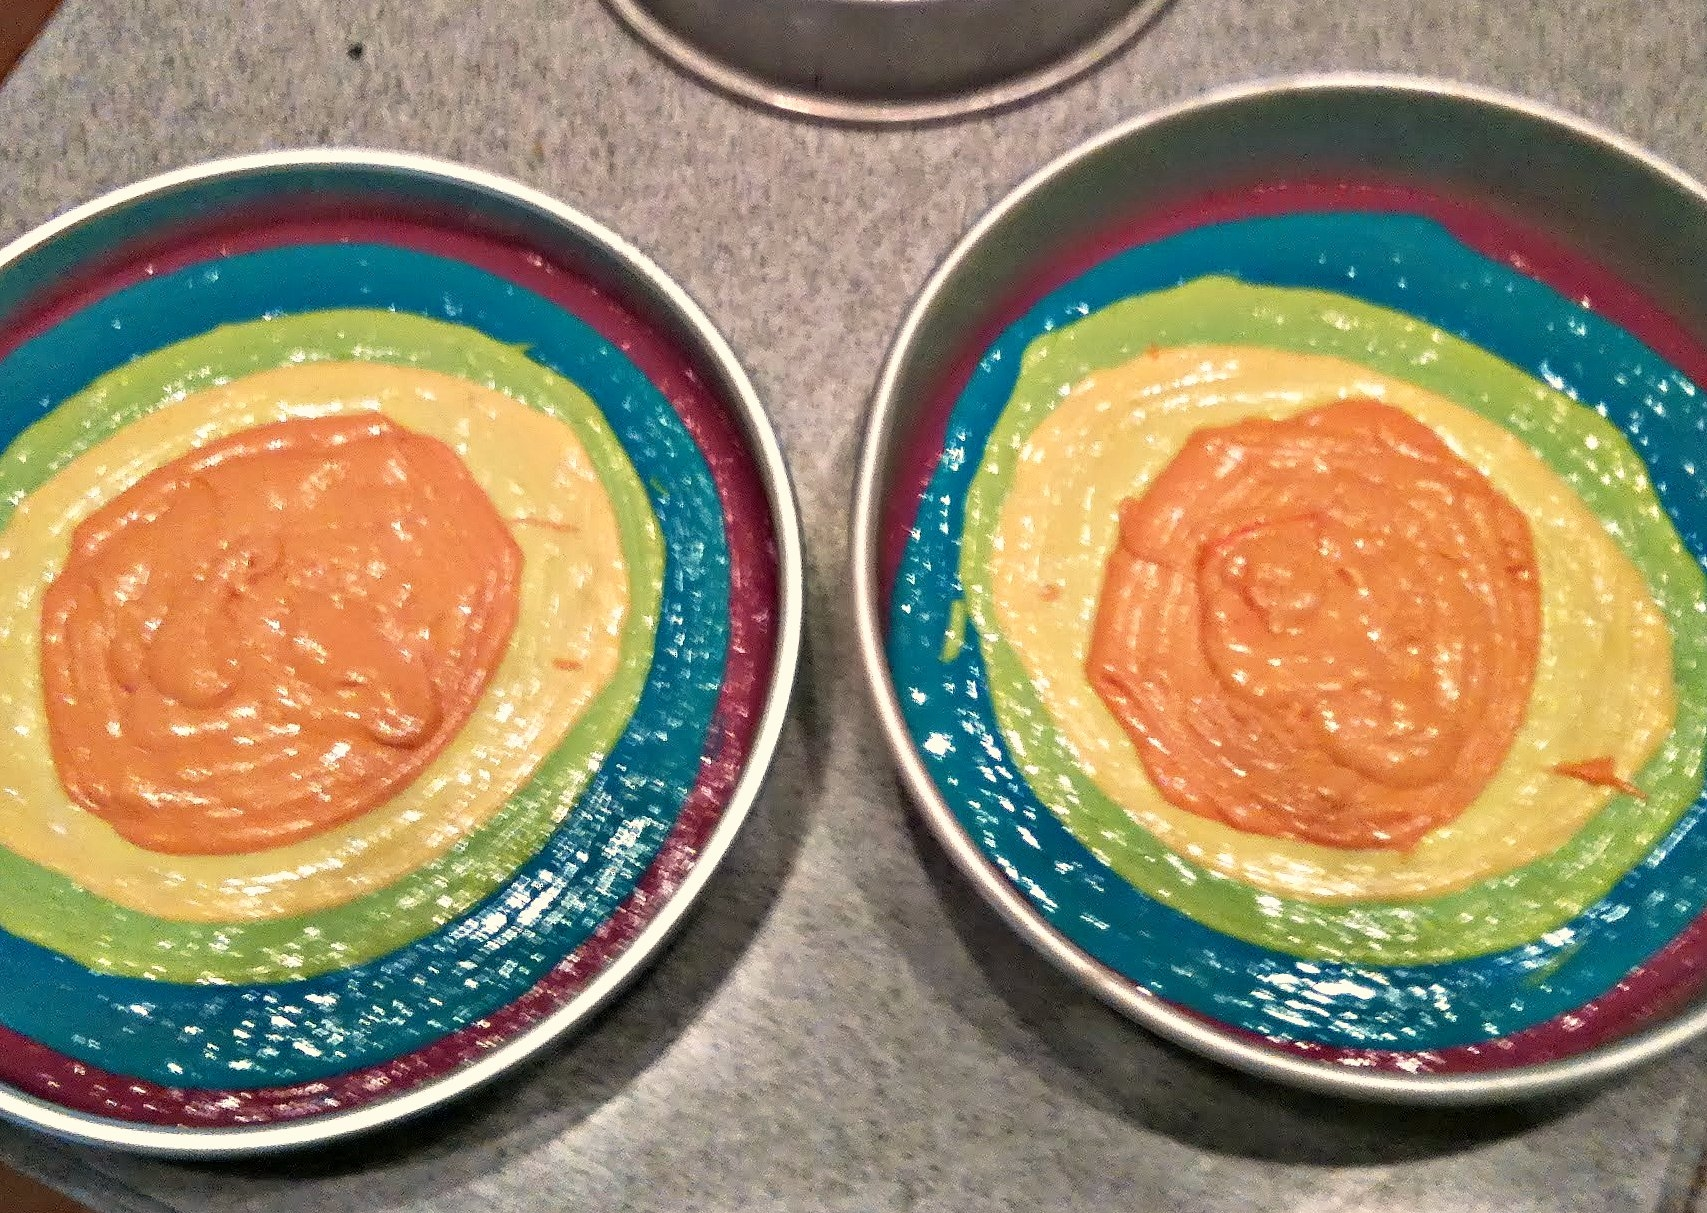 Safe Food Coloring For Cakes